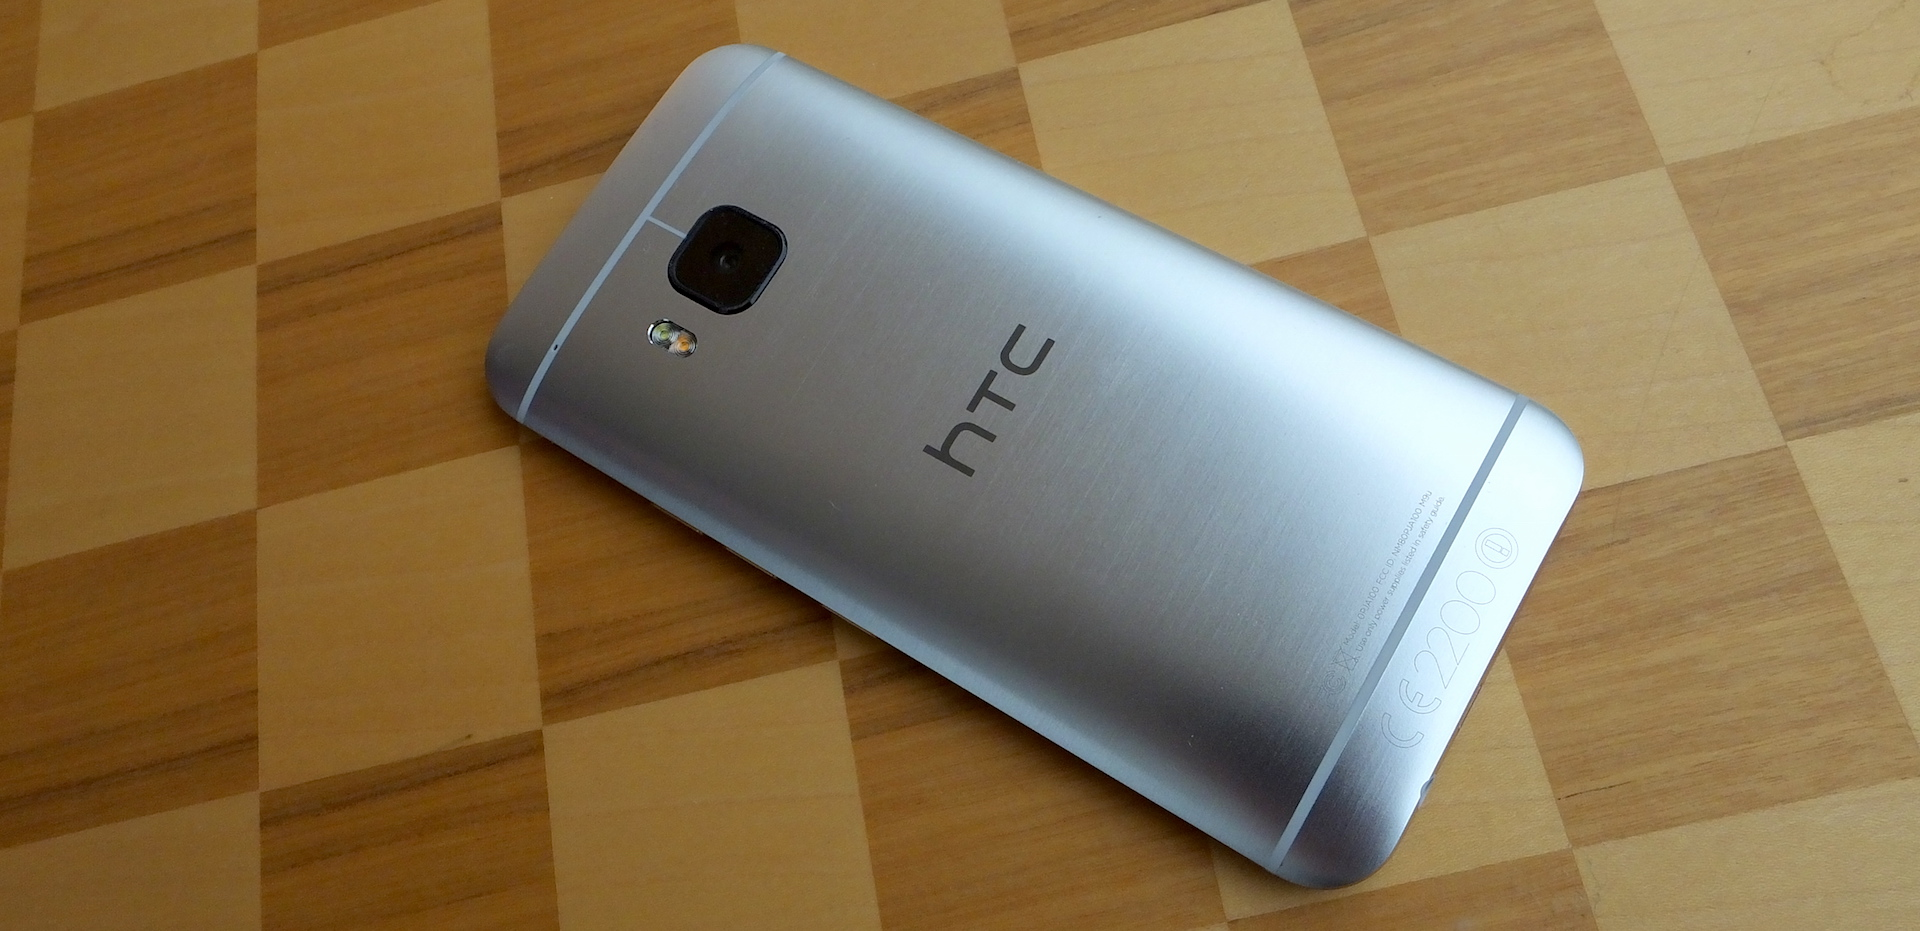 HTC One M9 - hands-on (2)